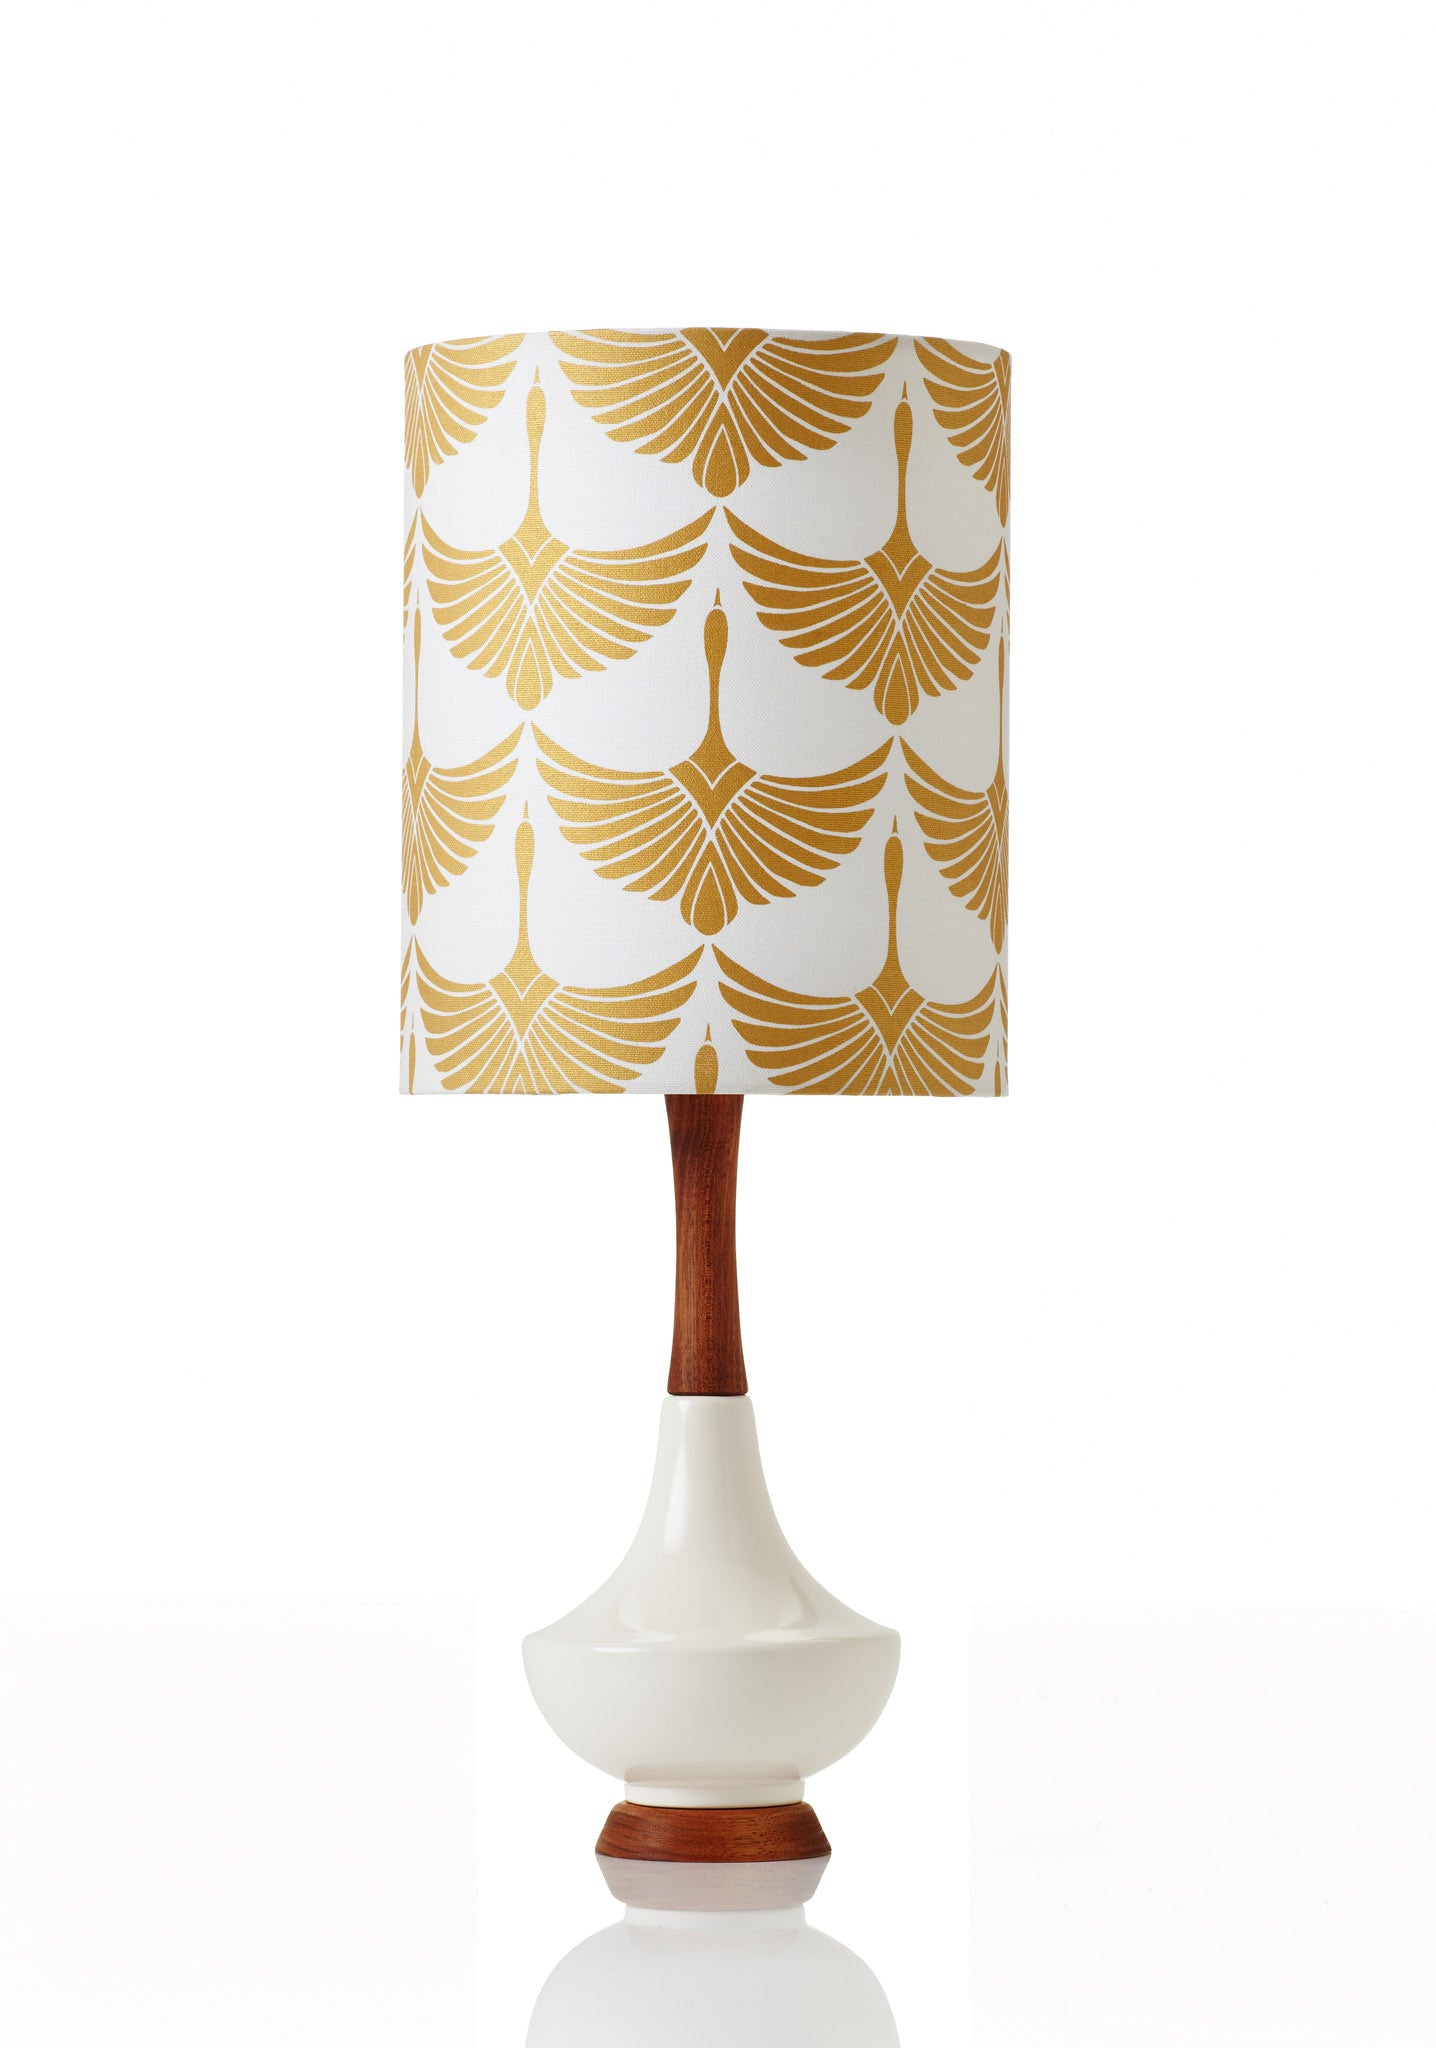 Electra Lamp Small - Swans Gold